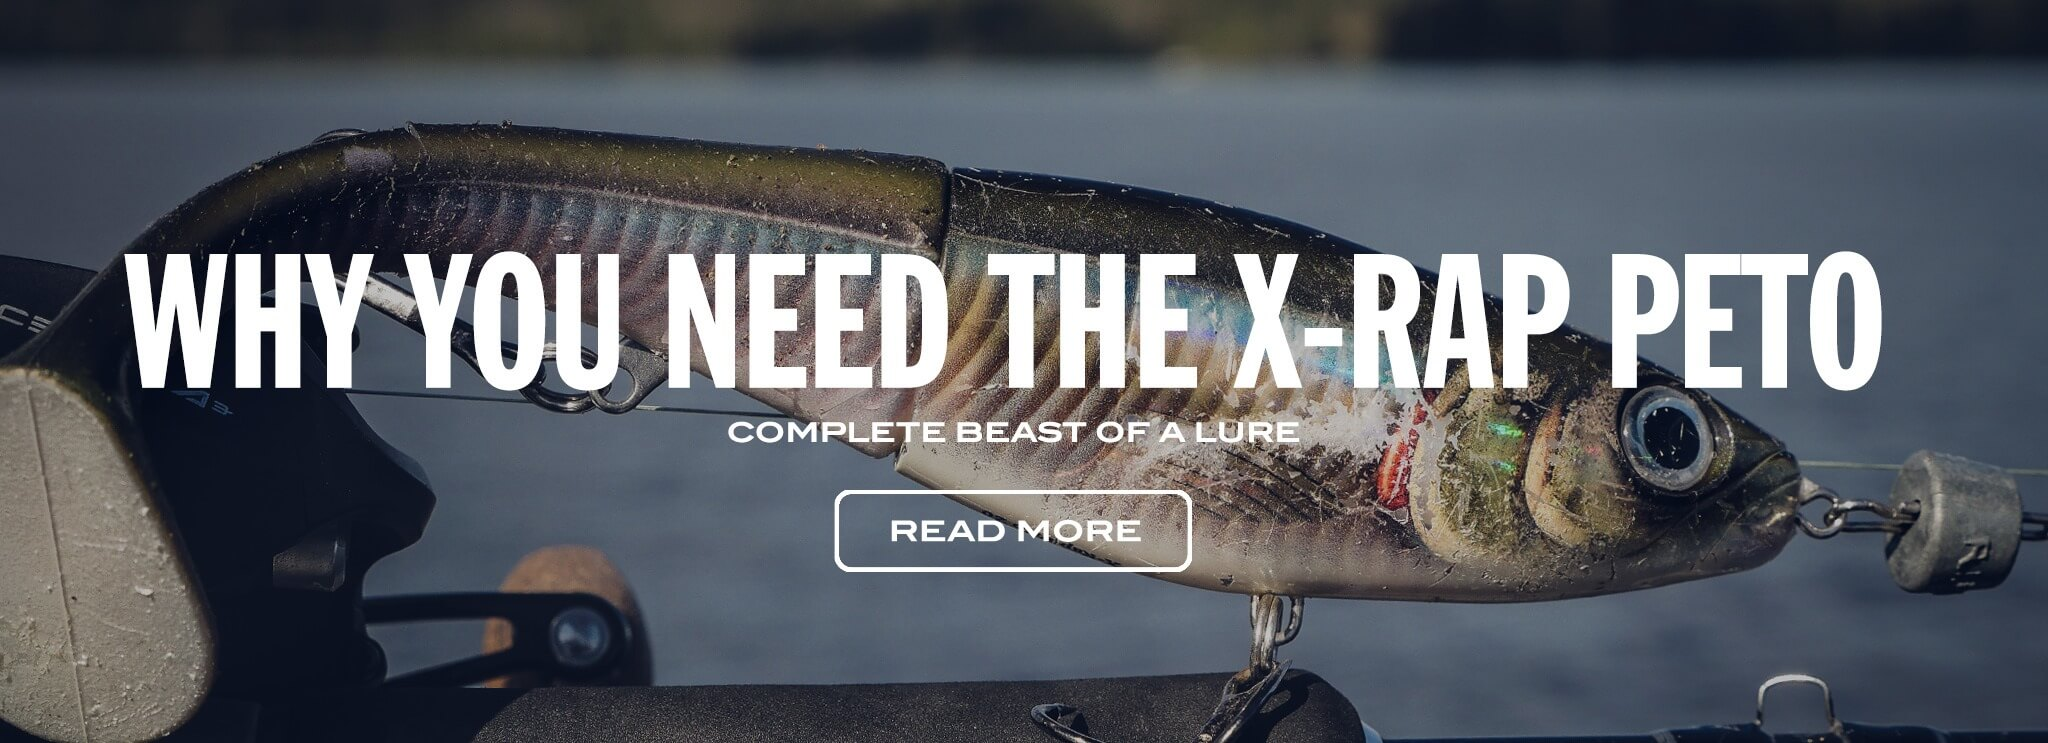 X-Rap Peto - complete beast of a lure!